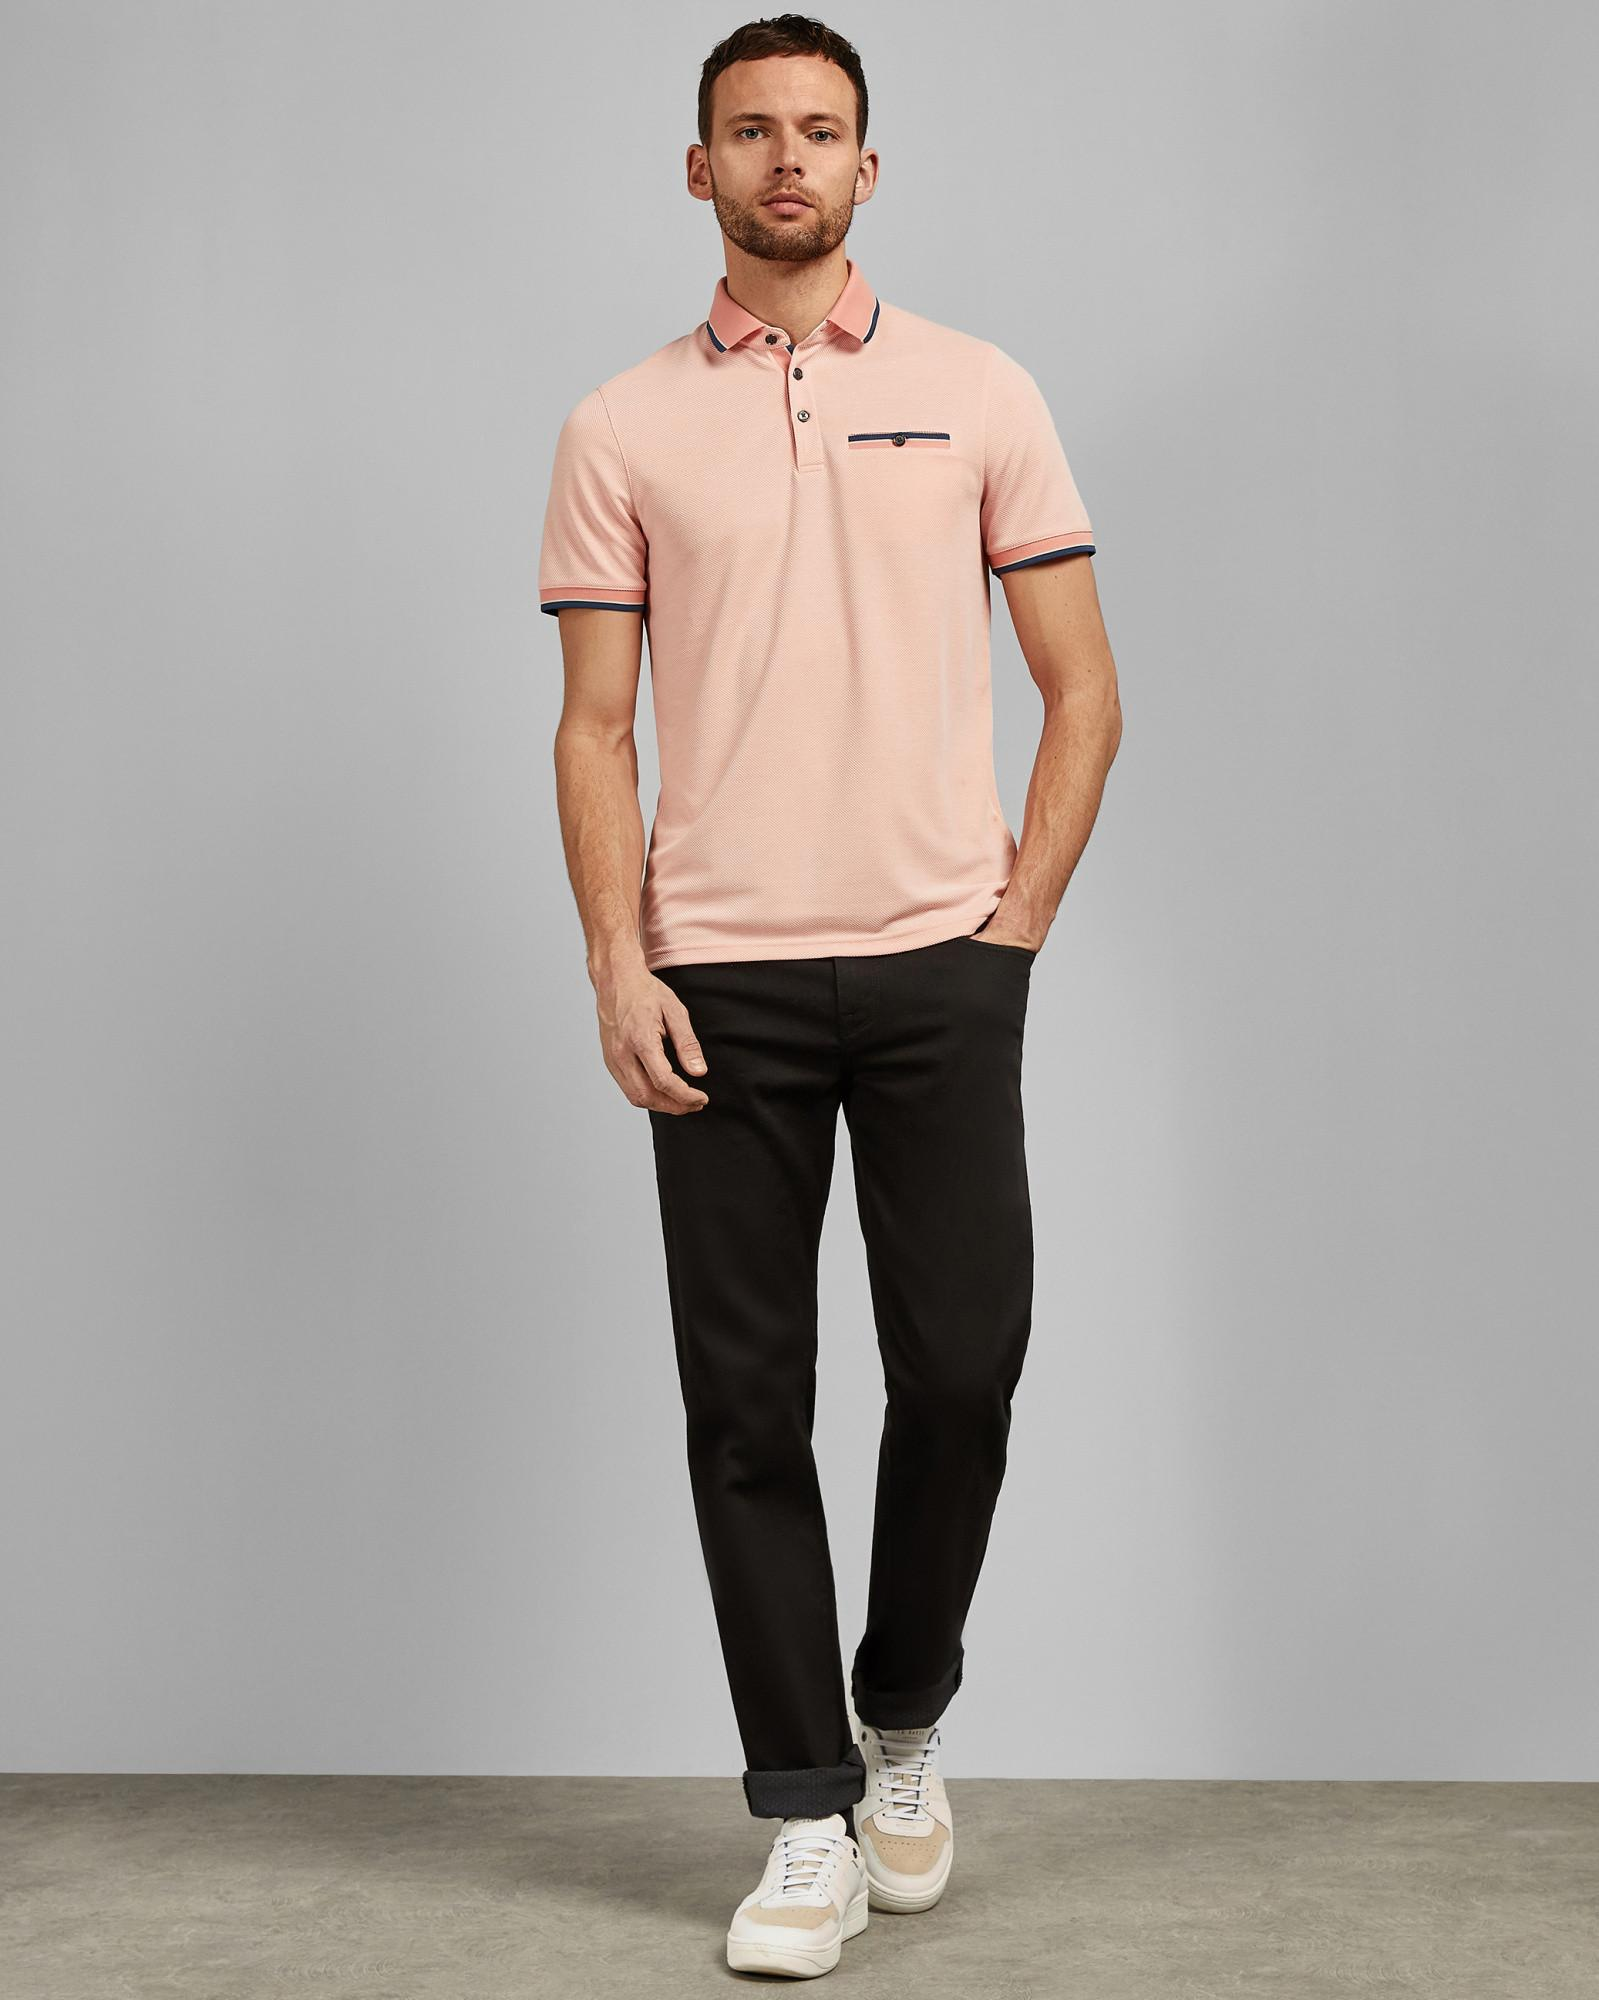 470d5801ae6c Lyst - Ted Baker Polo Shirt in Pink for Men